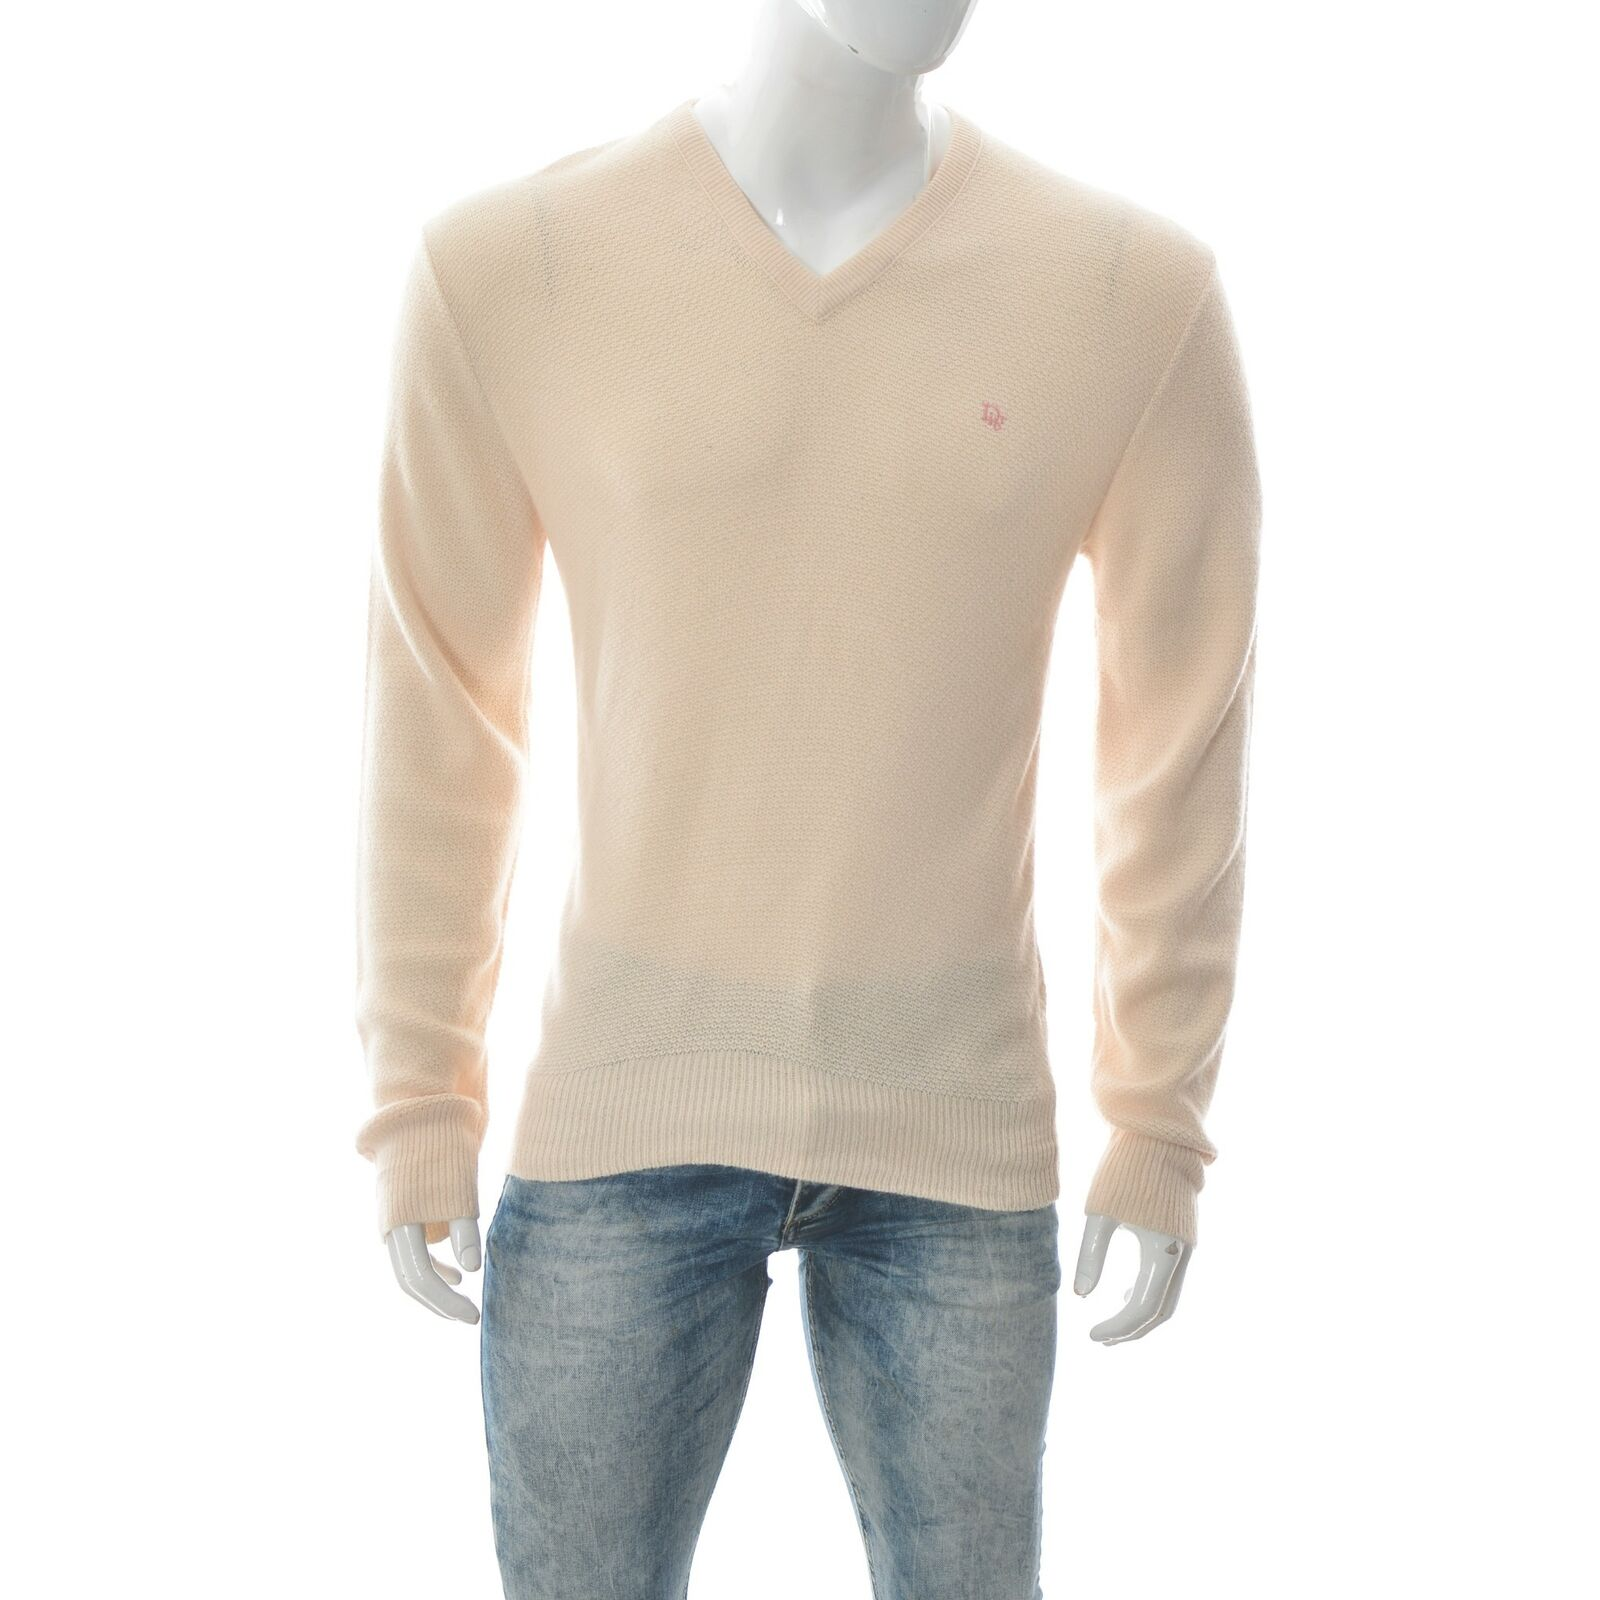 Christian Dior Men's V-Neck Sweater Long Sleeve Size L Orlon Acrylic Made in USA